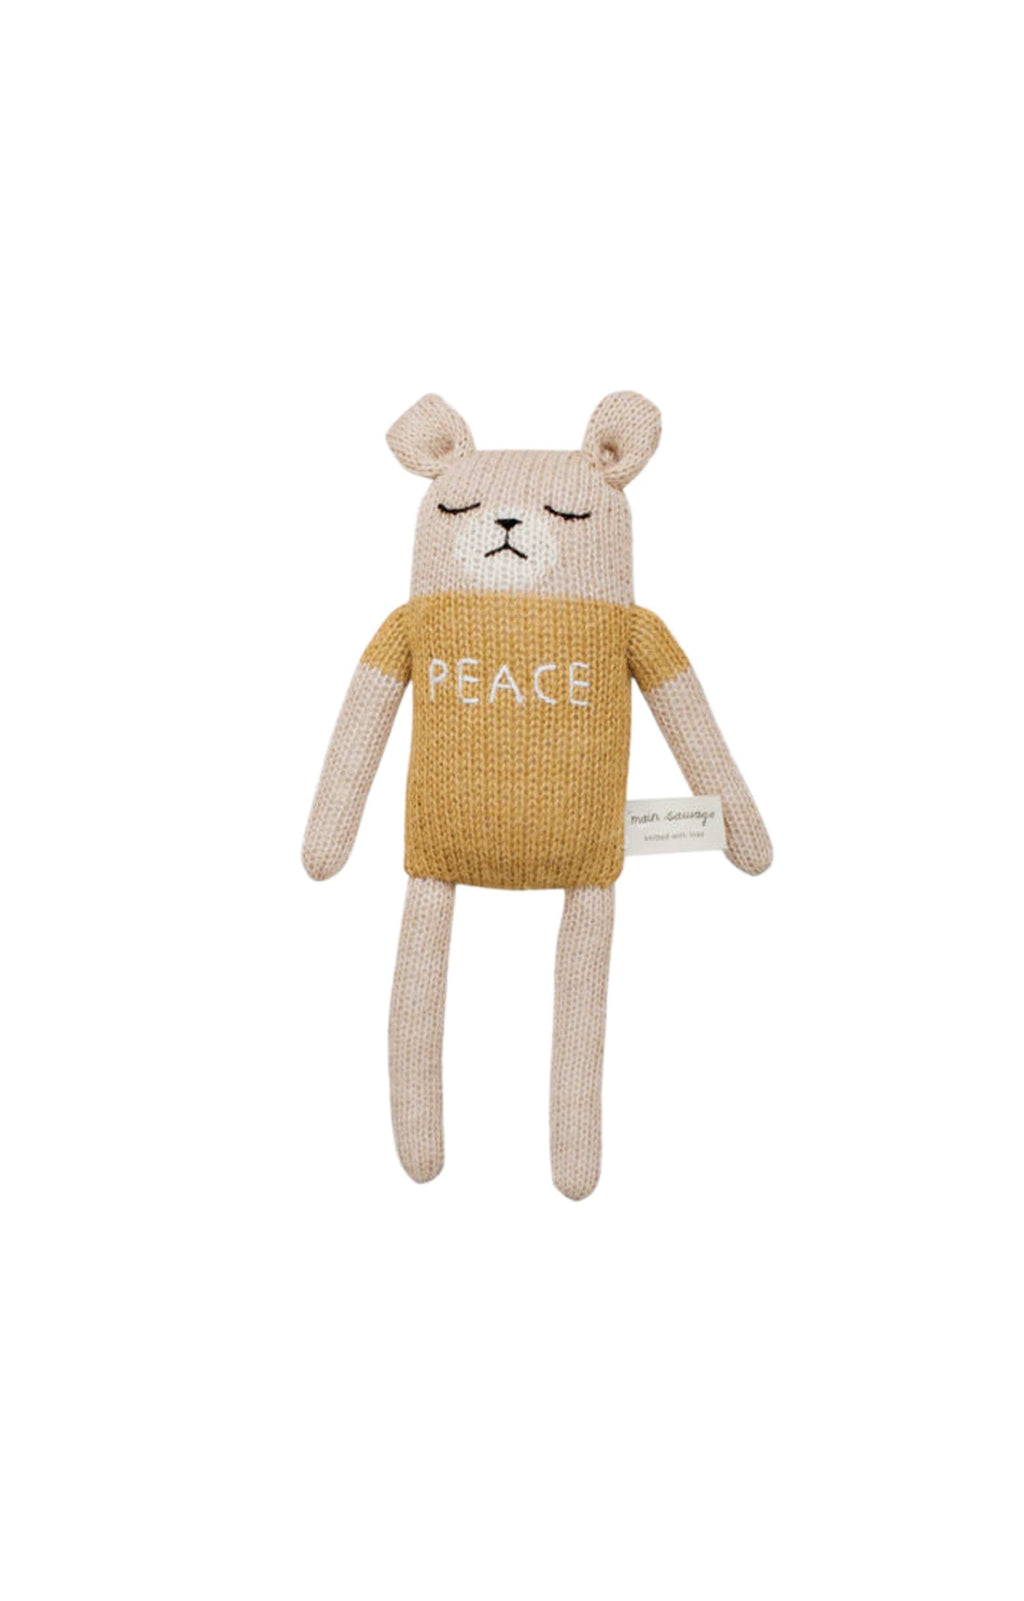 "Main Sauvage ""peace"" teddy knit toy, ochre (PRE-ORDER AUG)"